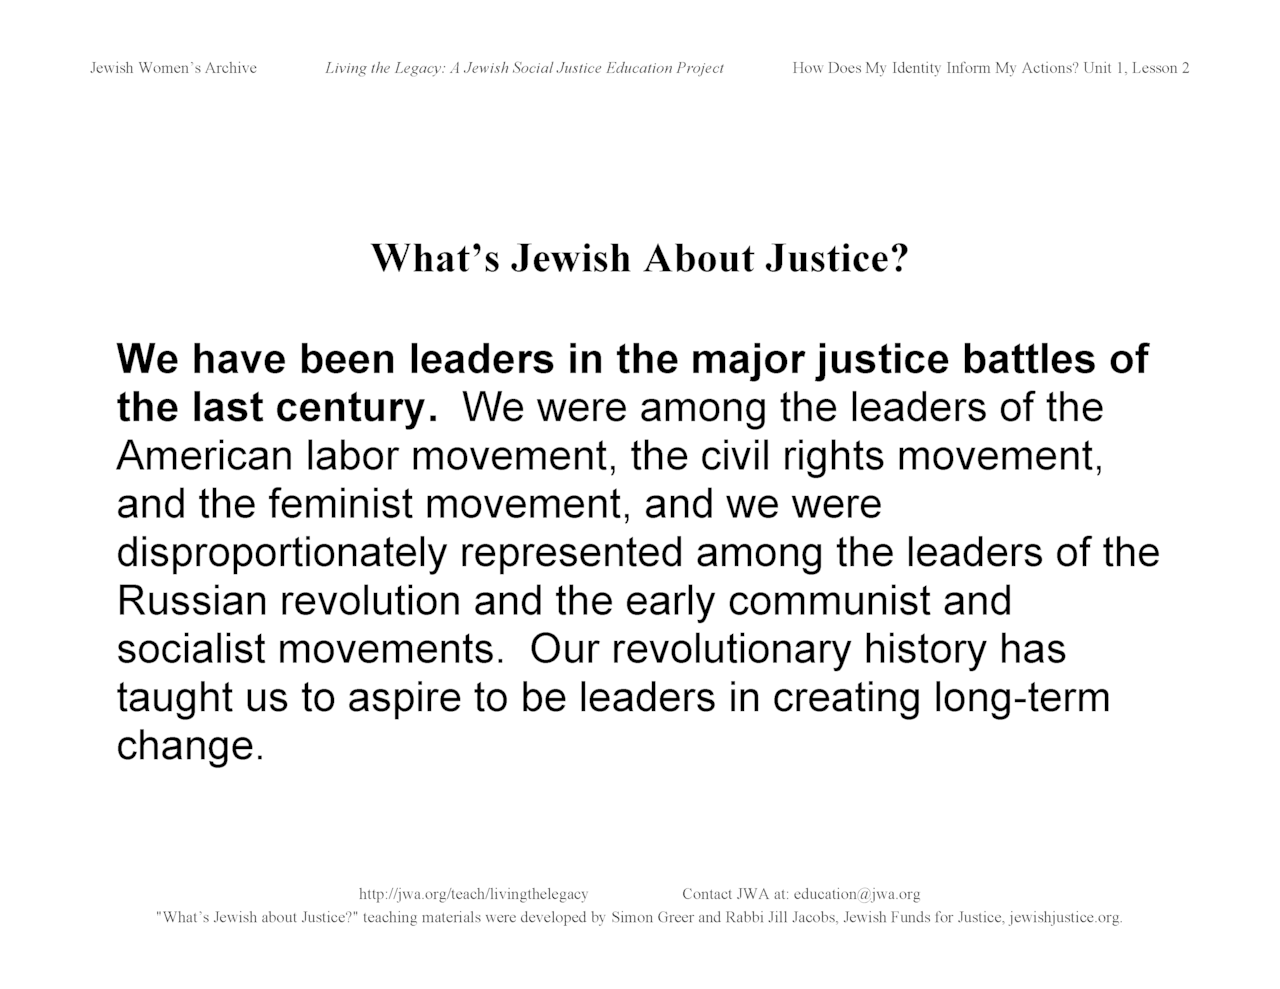 """What's Jewish About Justice?"" signs: We have been leaders in the major justice battles..."